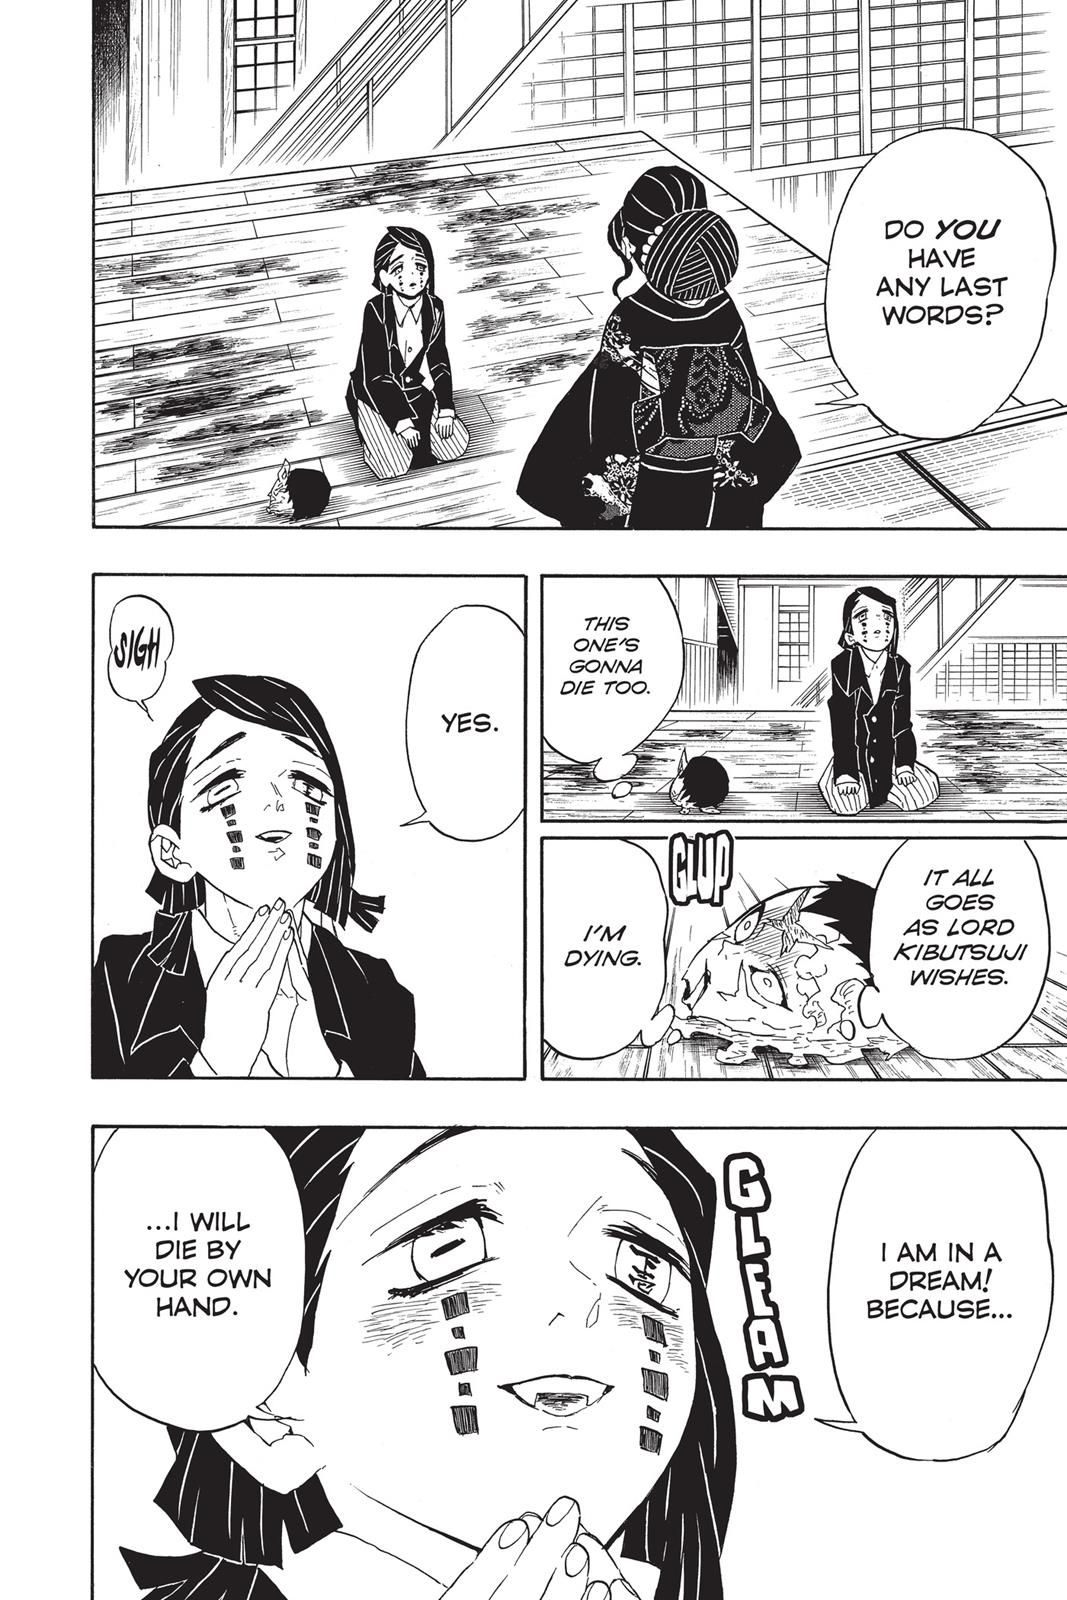 Kimetsu no Yaiba Chapter 52 Page 14 in 2020 Chapter